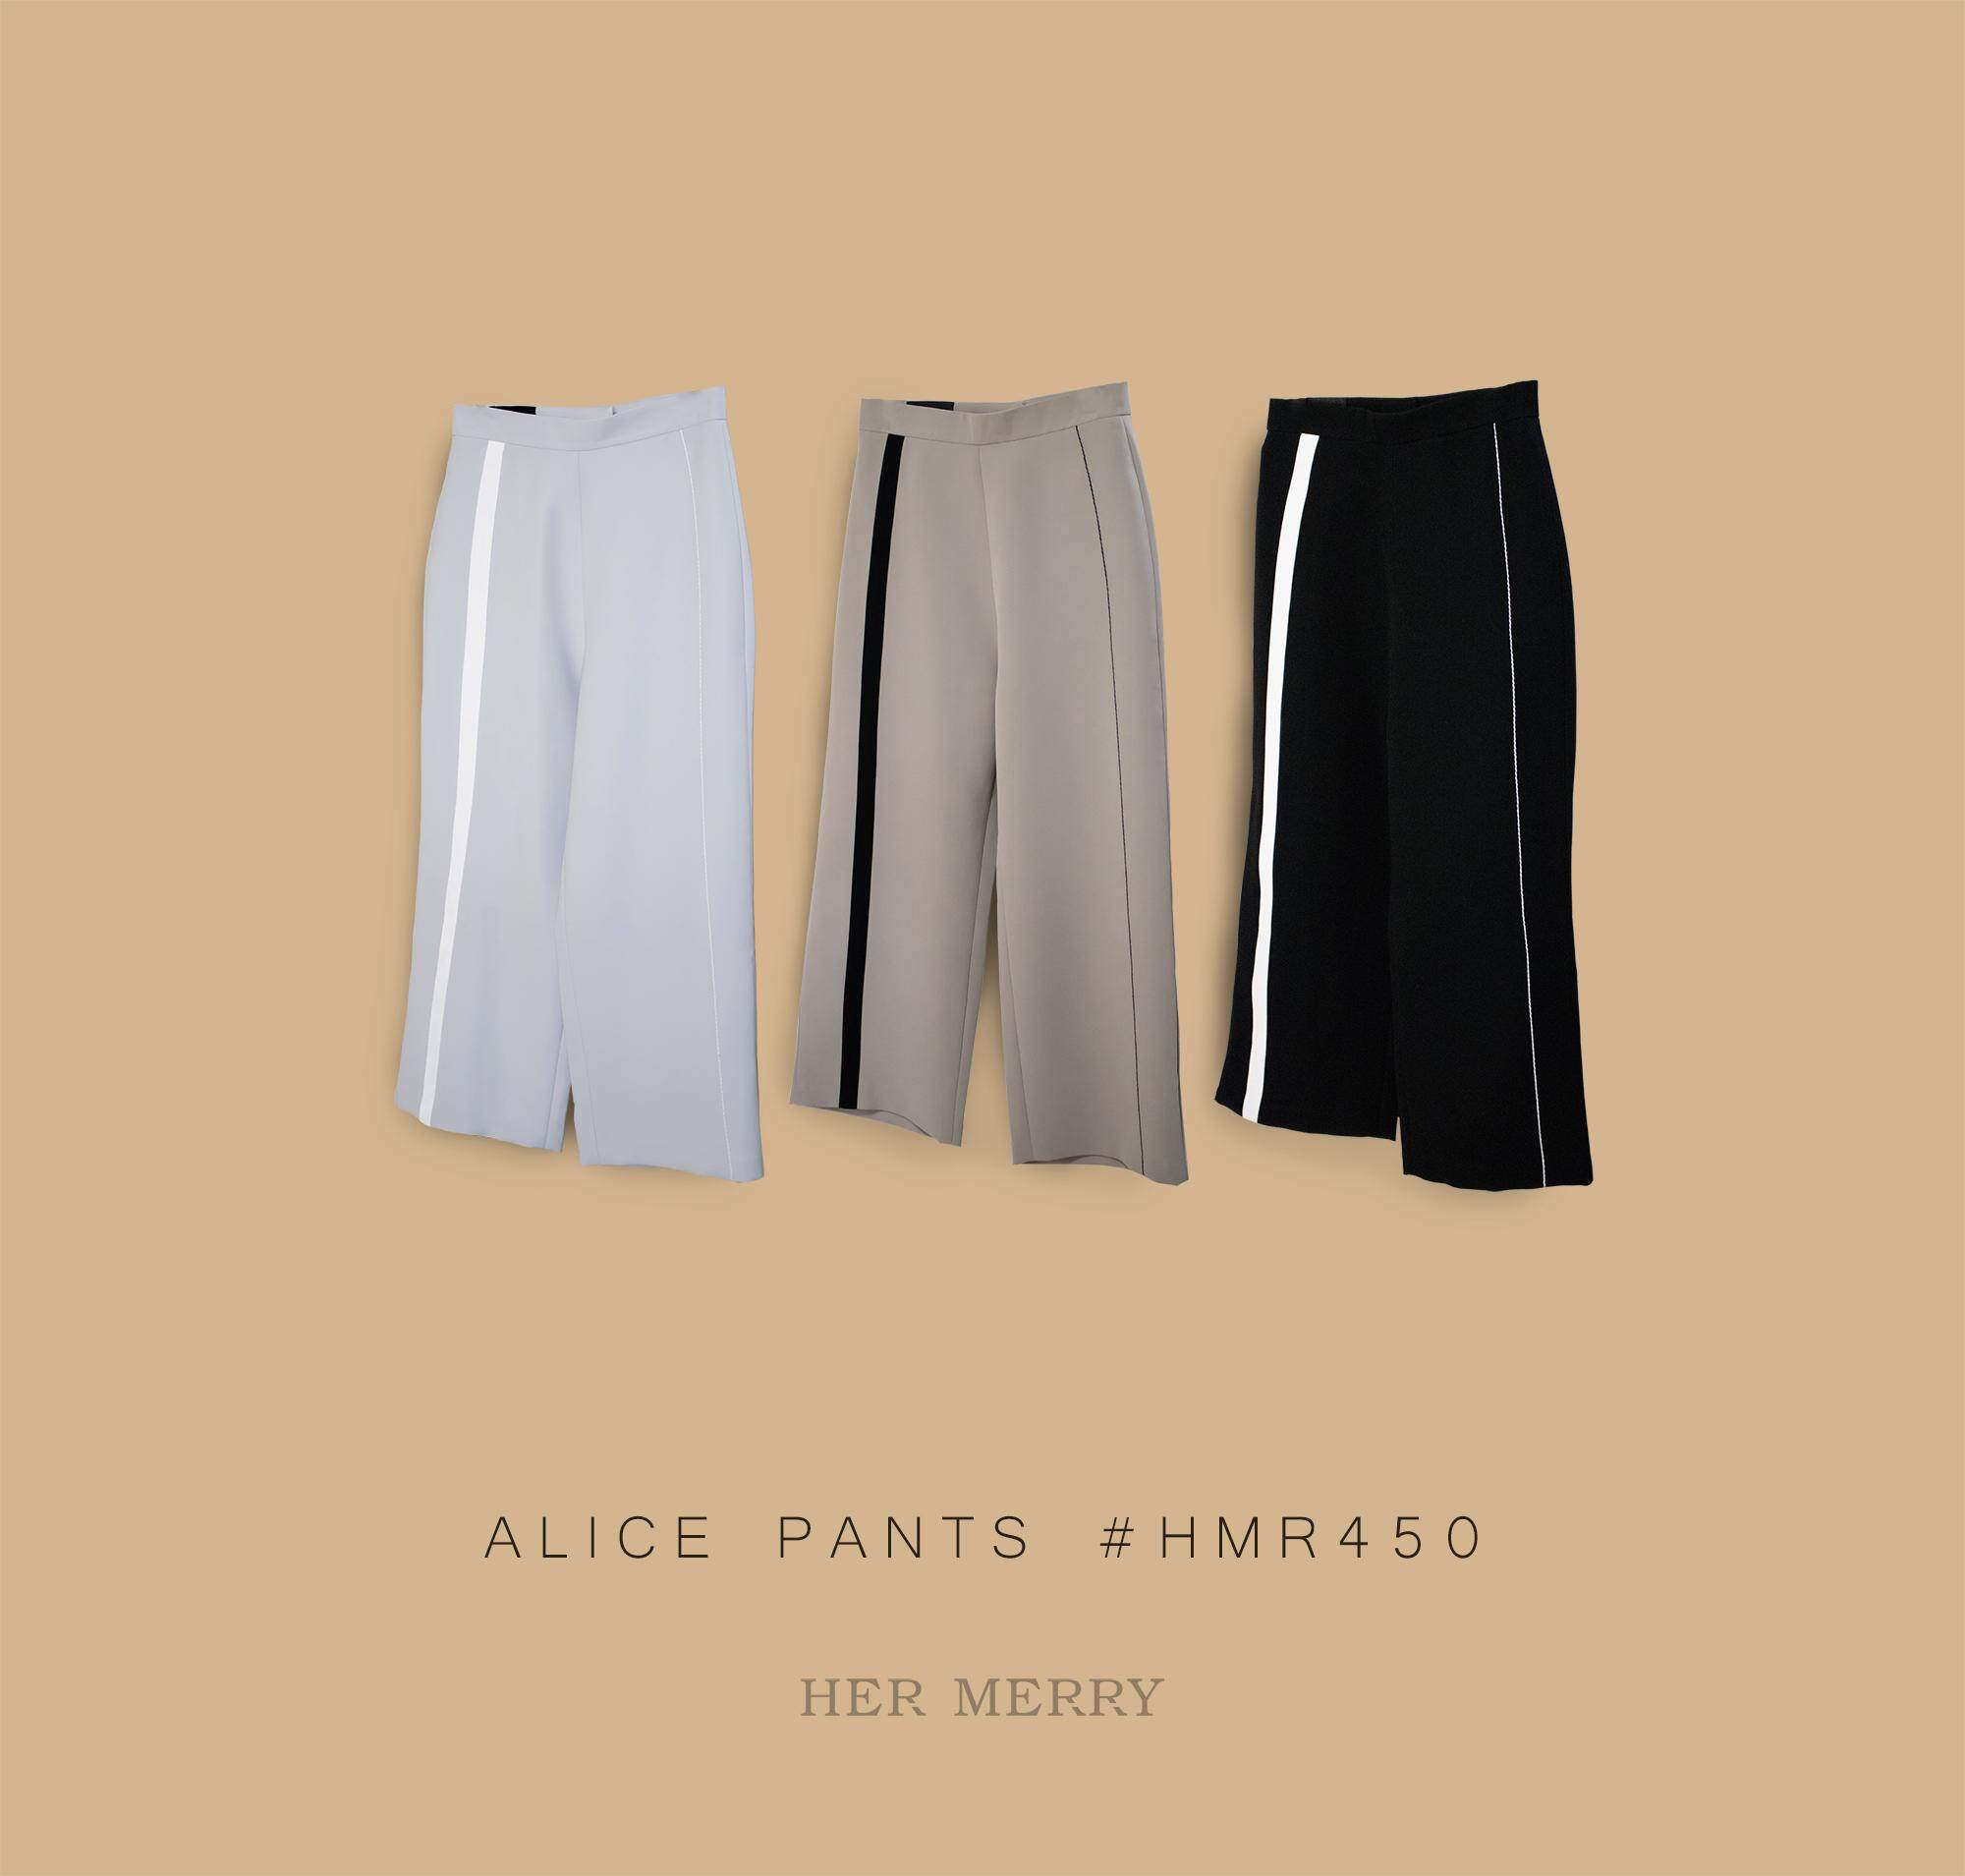 Her Merry Brand: Alice Pants